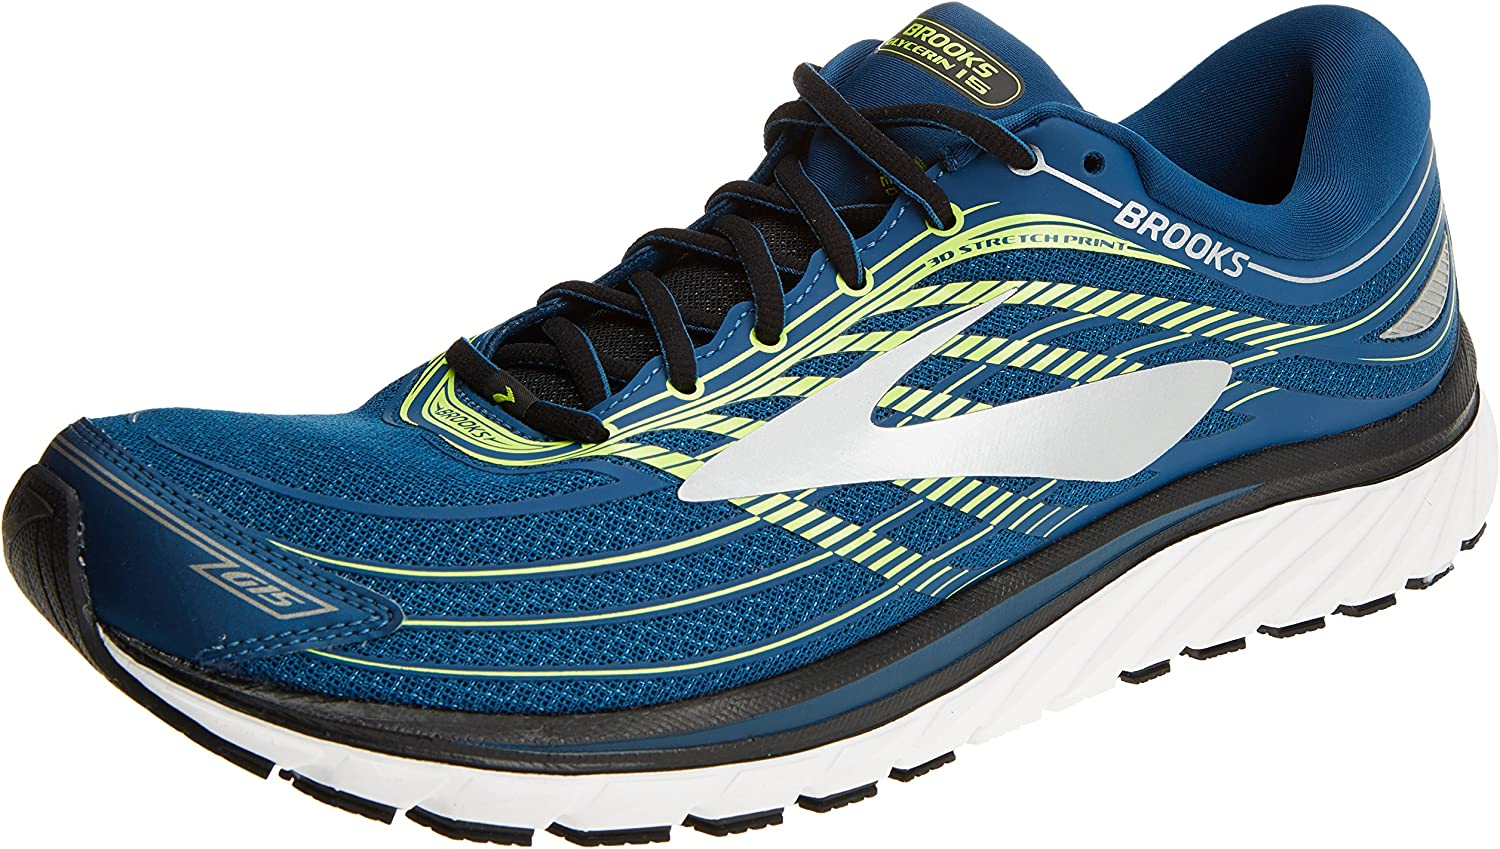 Brooks Glycerin 15, Zapatillas de Running para Hombre, Multicolor (Blue/Lime/Silver 1d473), 46.5 EU: Amazon.es: Zapatos y complementos